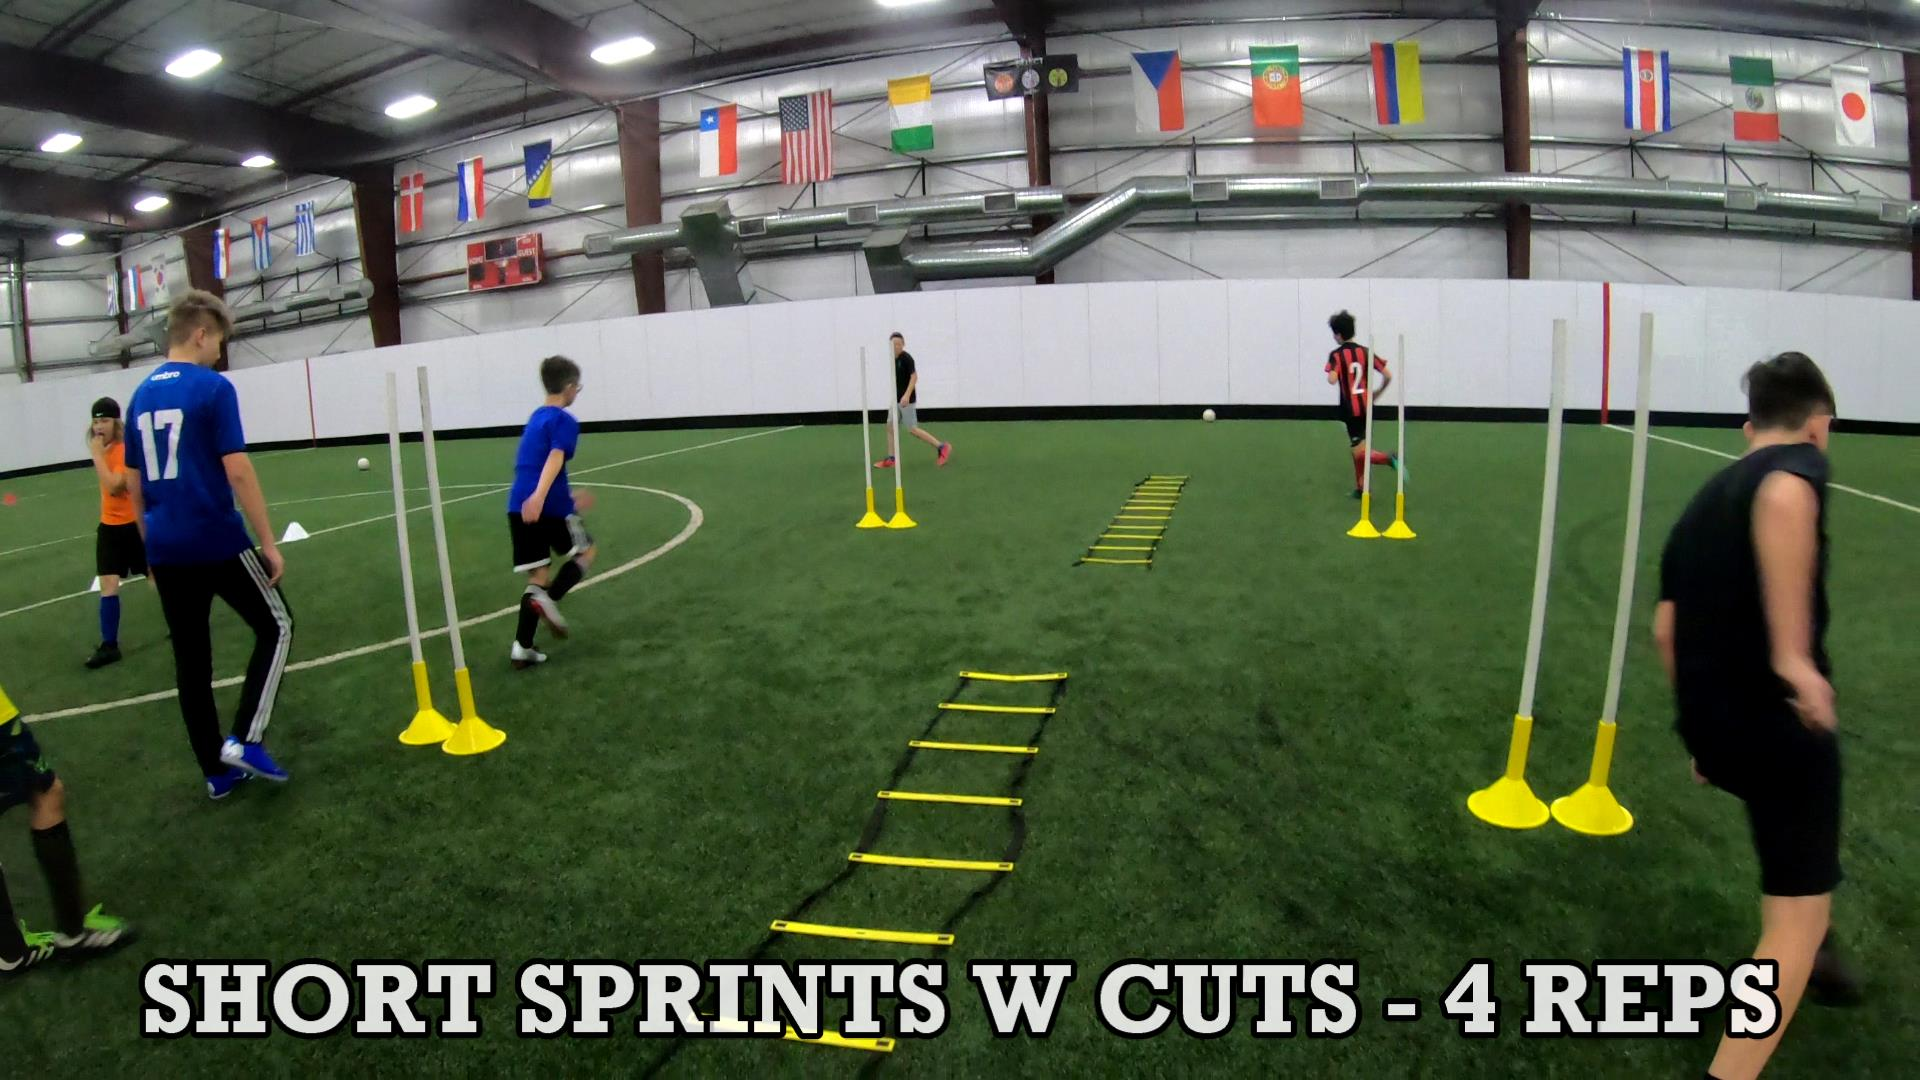 SOCCER COACHING DRILLS FOR KIDS 4